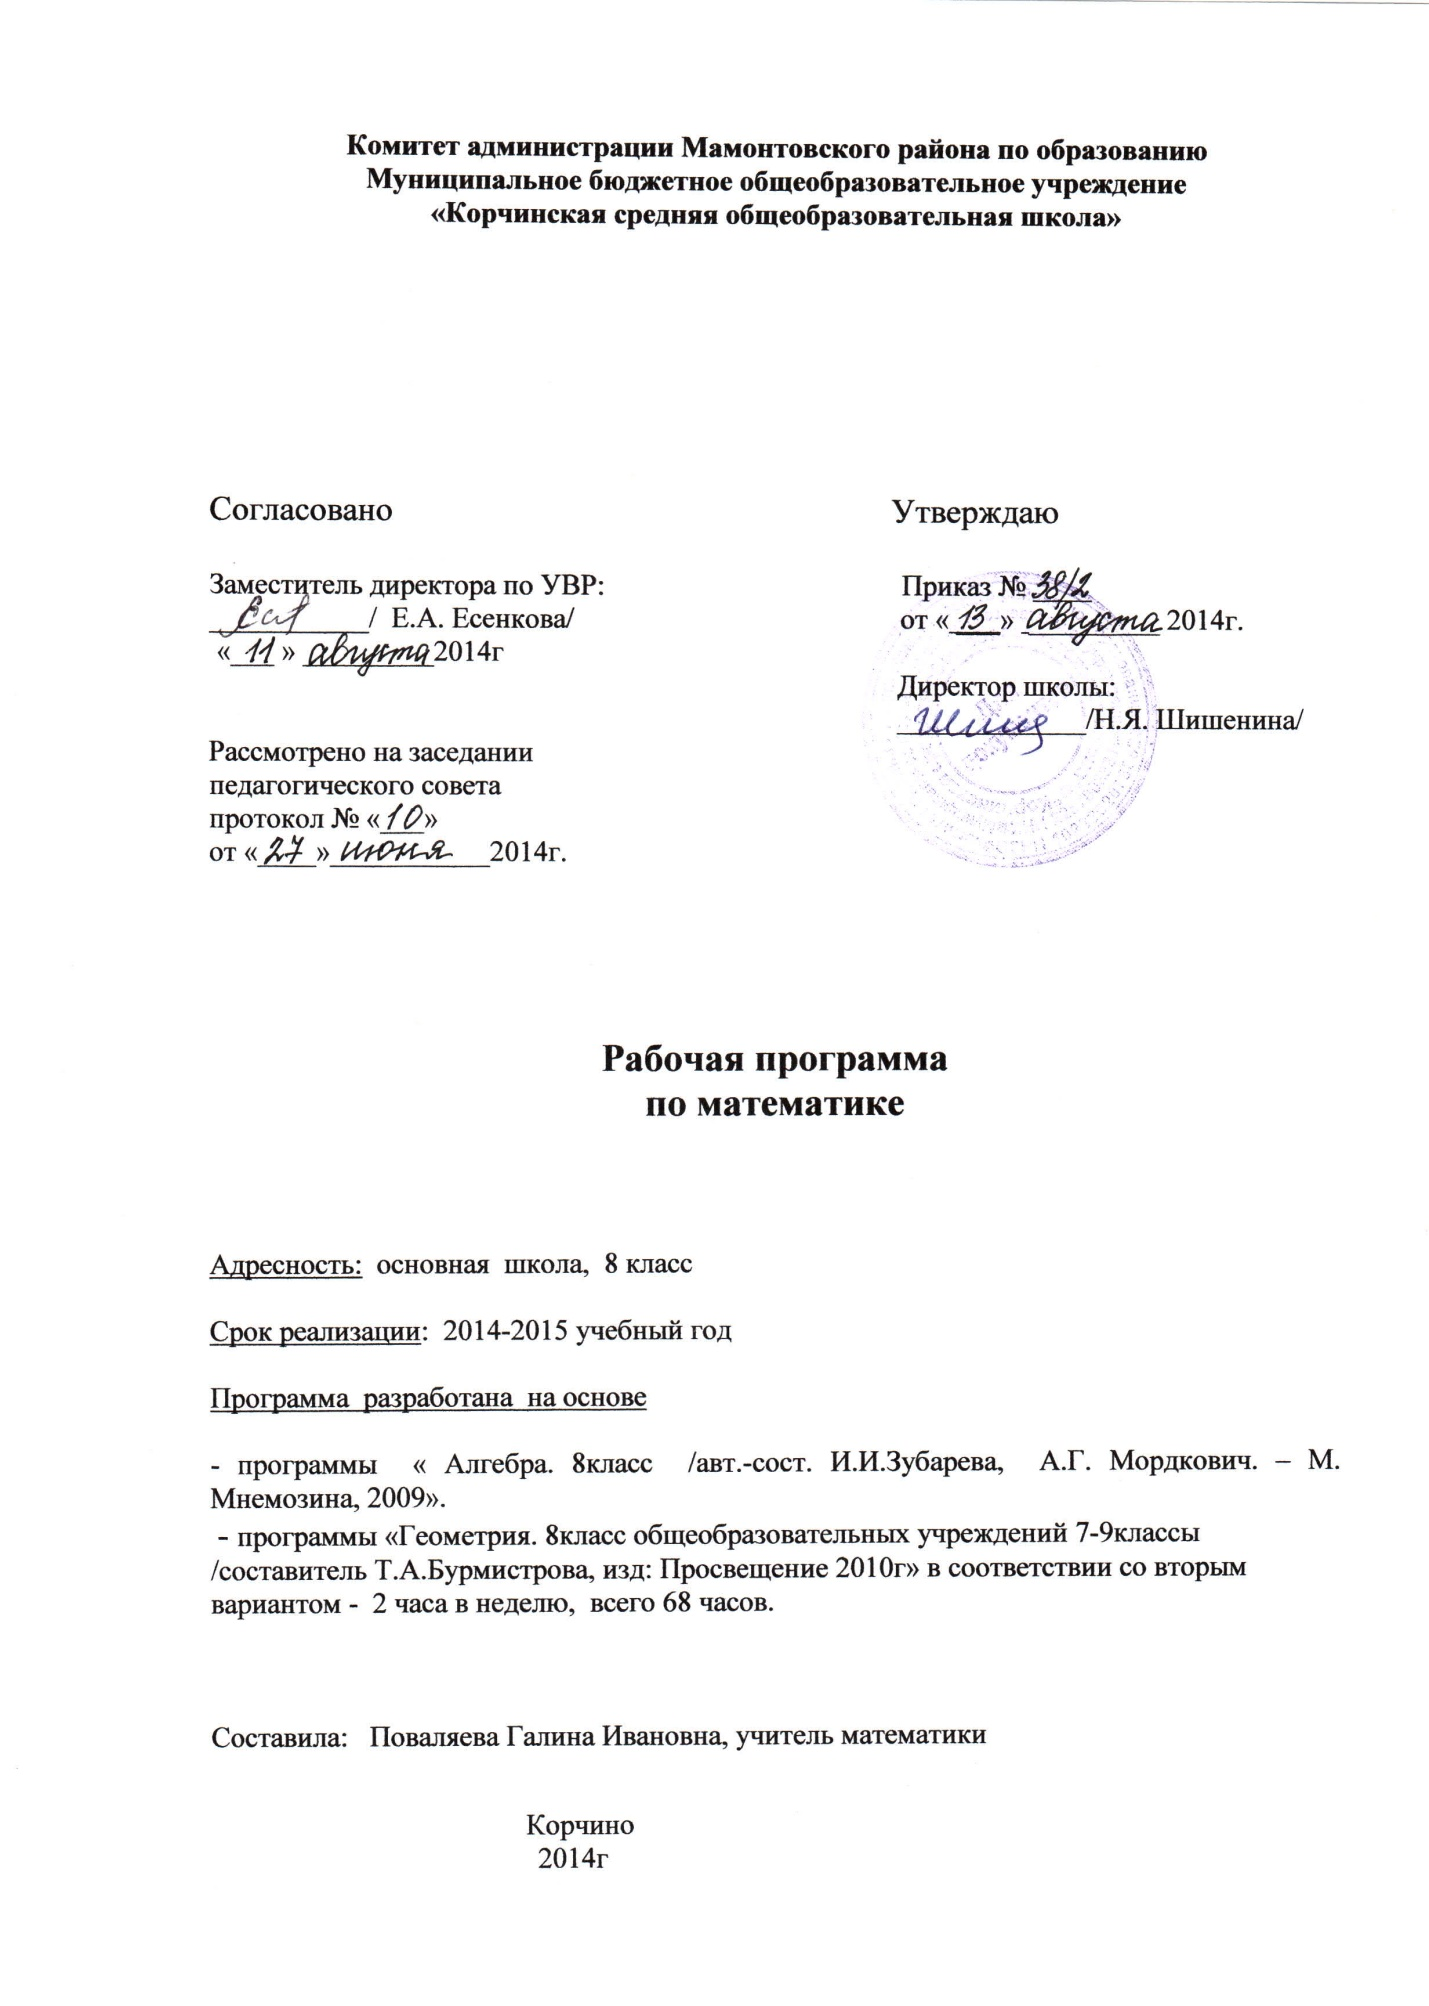 C:\Documents and Settings\Admin\Рабочий стол\13-OKT-2014\140340.JPG